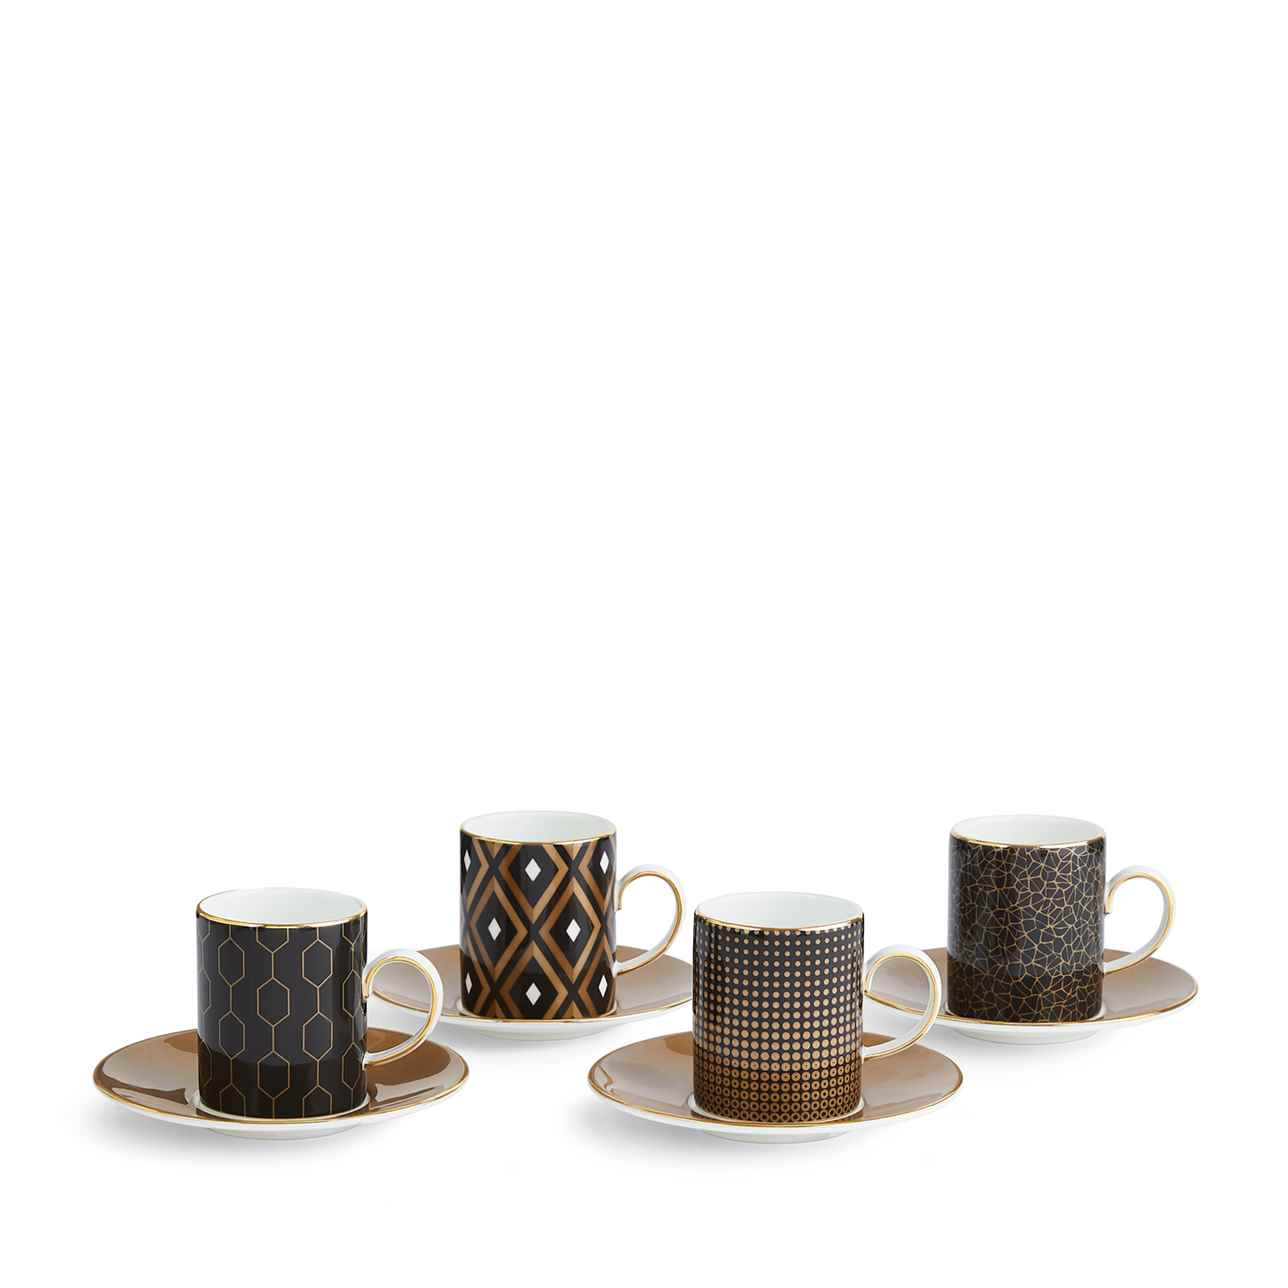 Arris Side Espresso Cup and Saucer, Set of 4